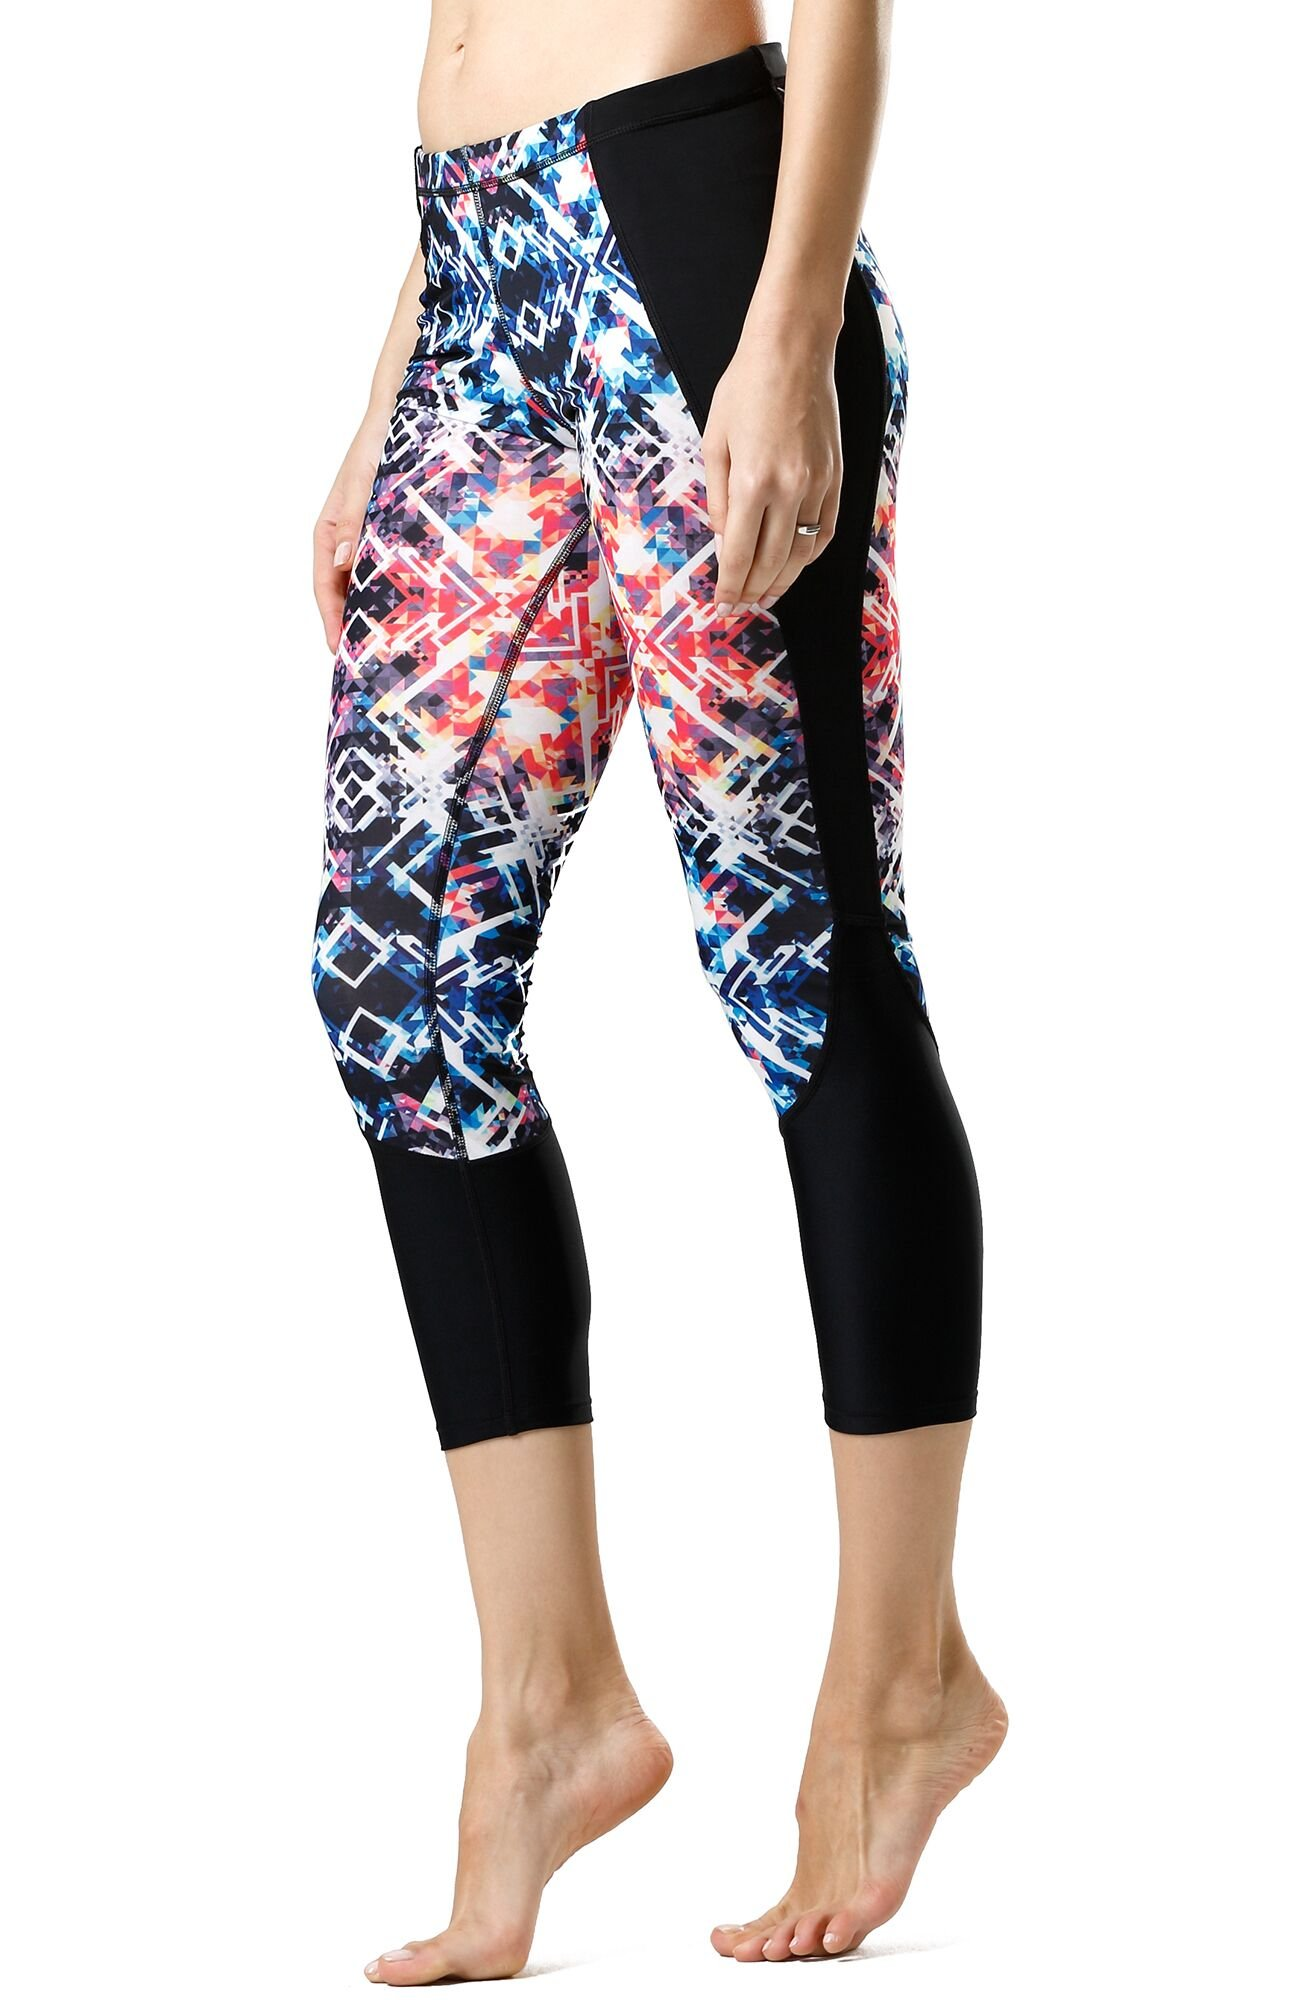 8b2498e60a4b5 Galleon - Icyzone Capri Yoga Pants Athletic Leggings Workout Clothes  Fitness Tights For Women (S, Prismatic)